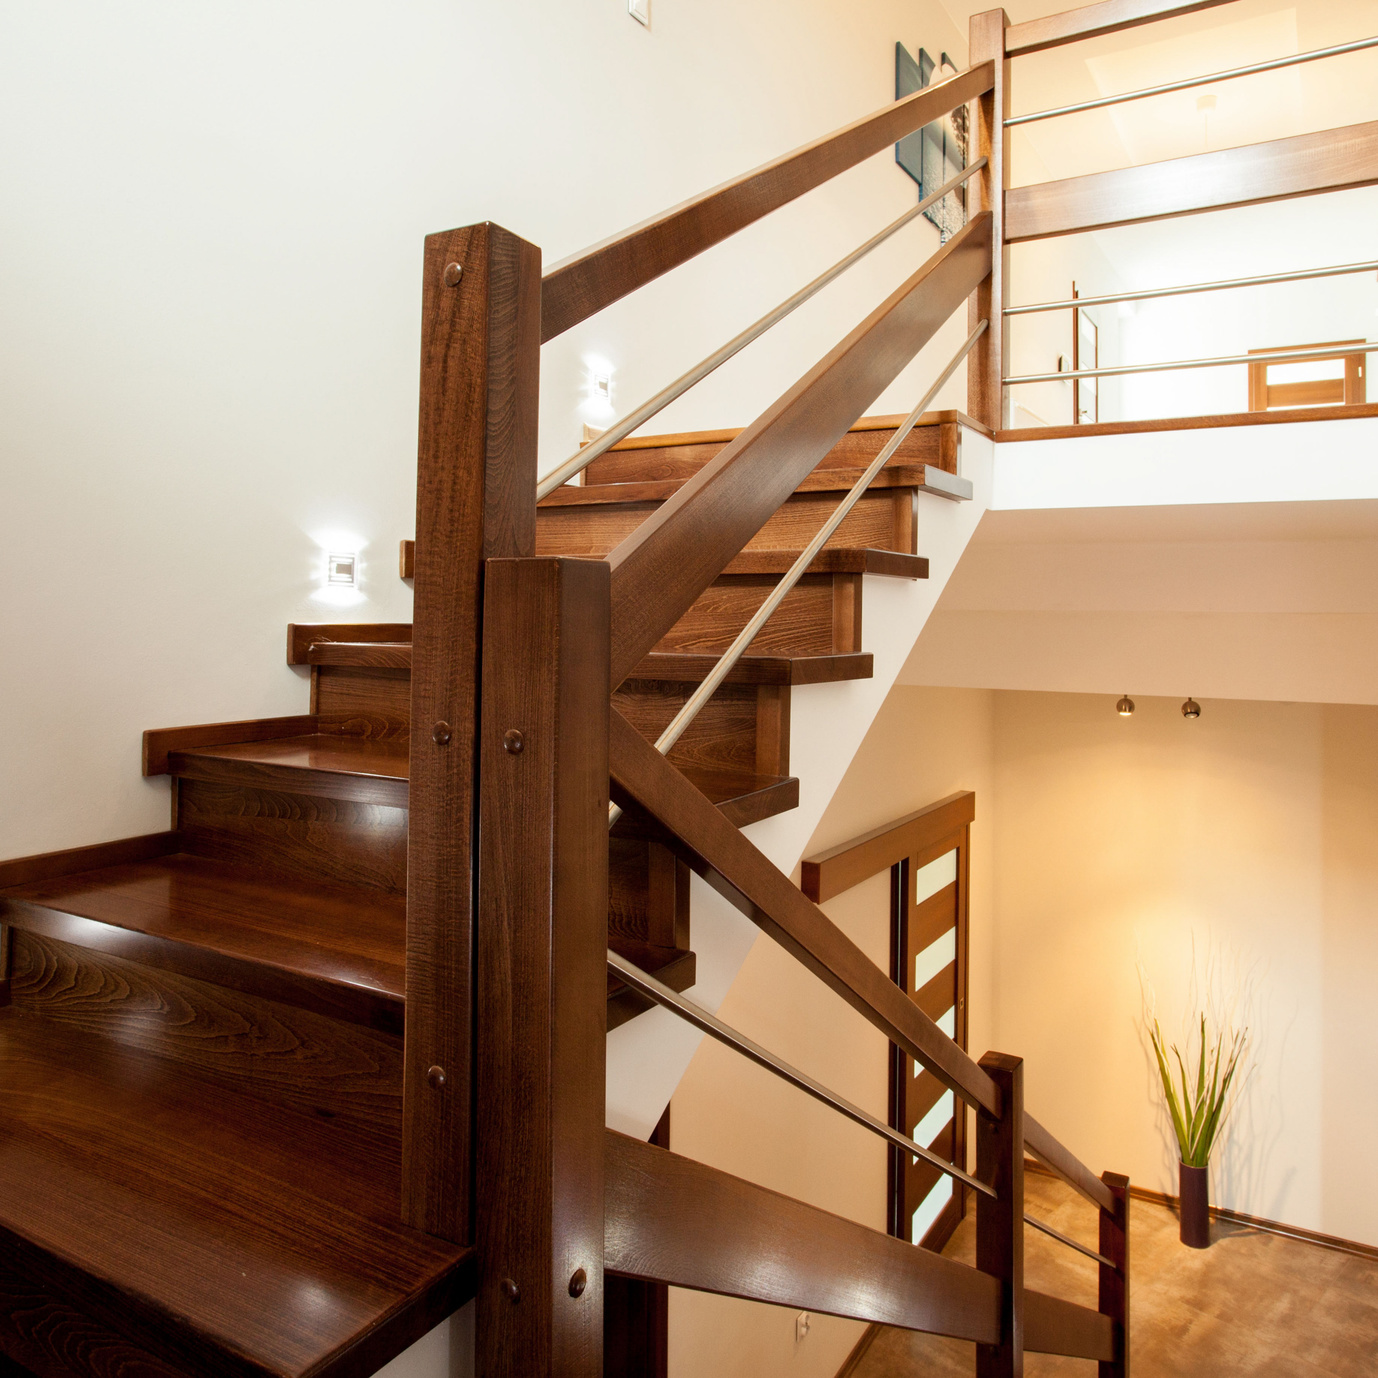 Wooden staircase renovation Doncaster.